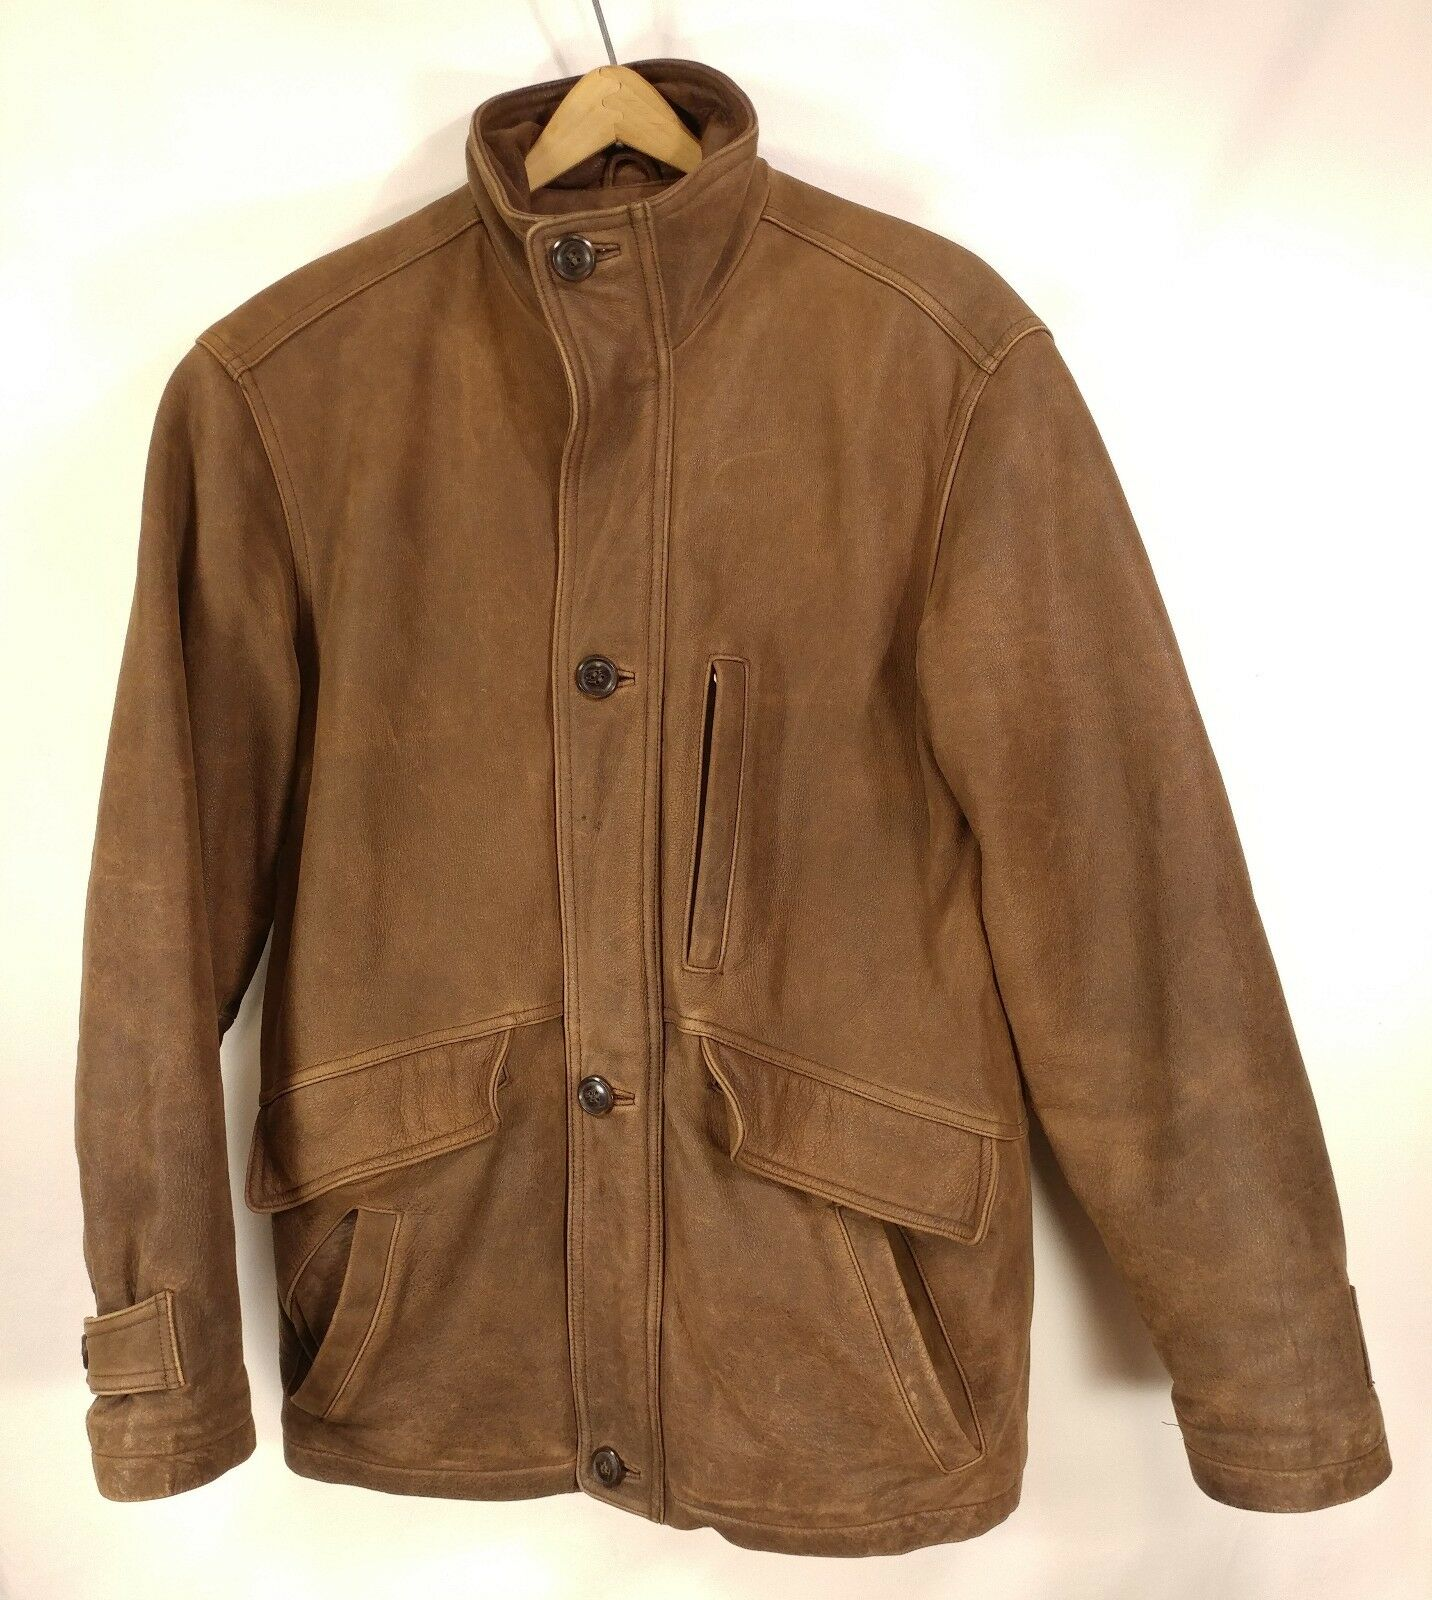 Herren Wilsons Leder Thinsulate Heavy Warm Braun Leder Coat - Small 42